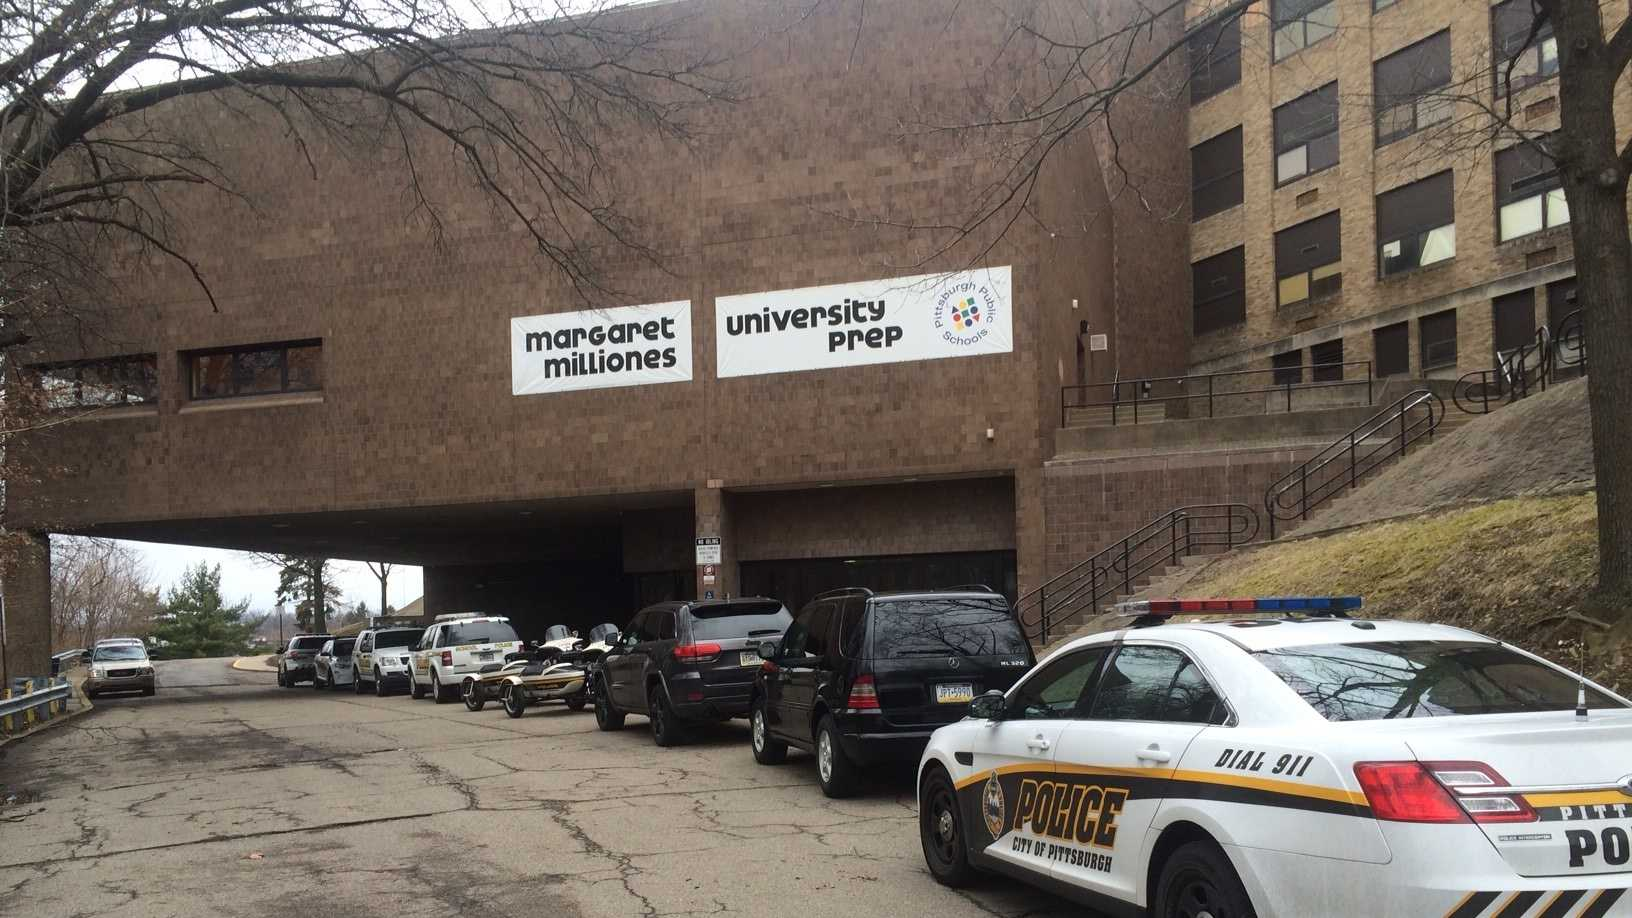 Pittsburgh Public Schools has announced Pittsburgh Milliones at University Prep is currently on lockdown.